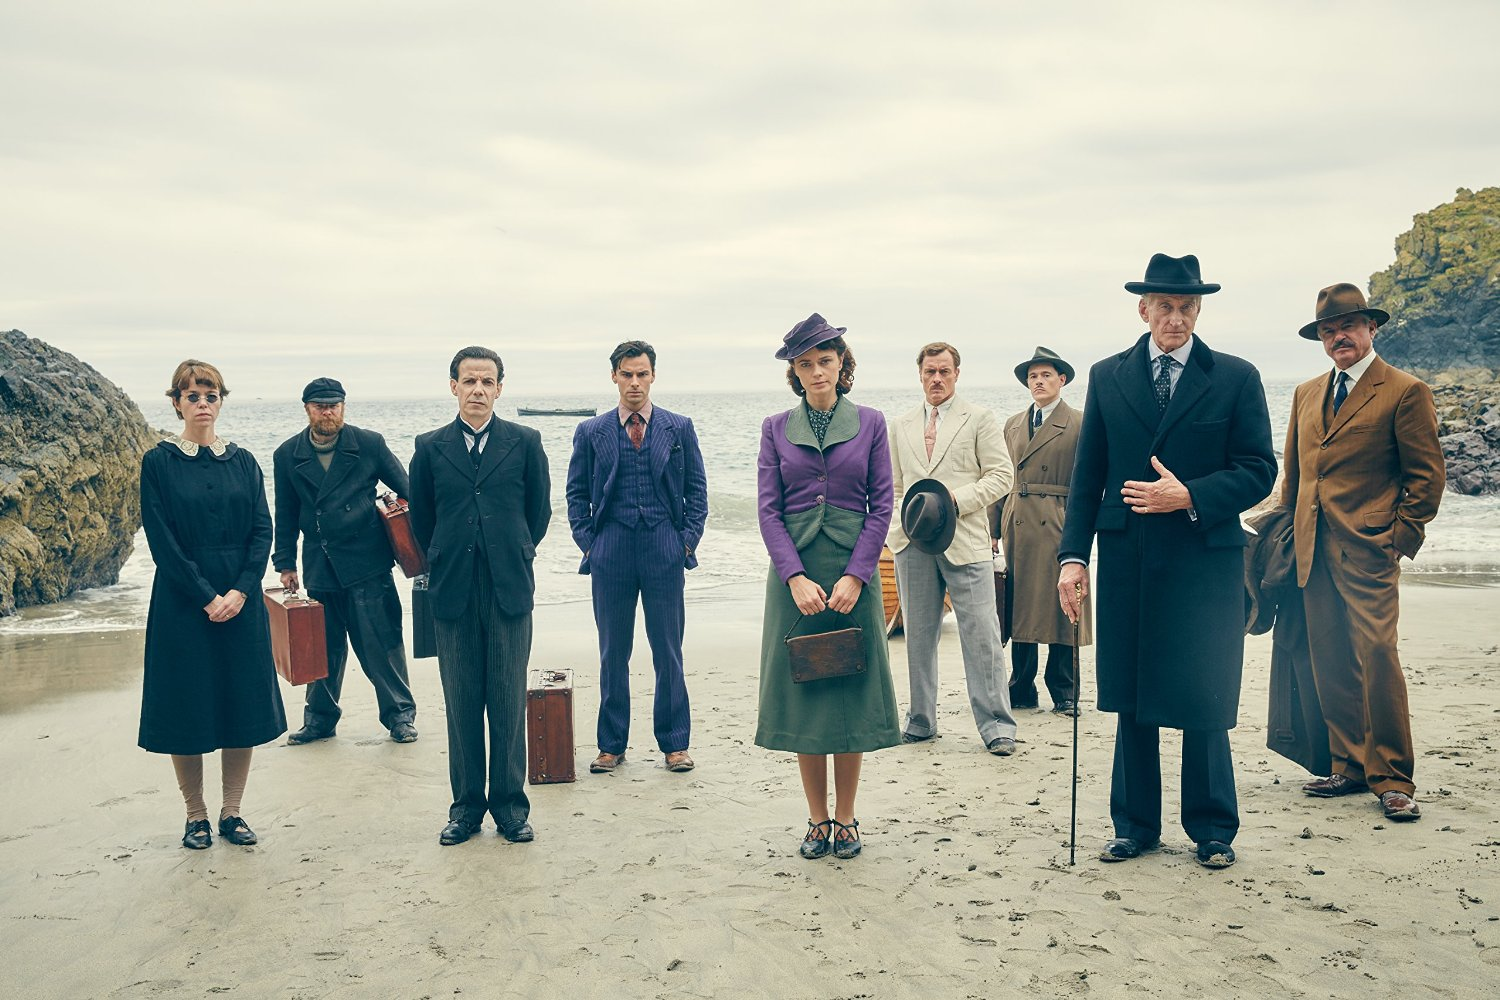 The characters arrive on the island - (l to r) Anna Maxwell Martin, Christopher Hatherall, Noah Taylor, Aidan Turner, Maeve Dermody, Toby Stephens, Burn Gorman, Charles Dance, Sam Neill in And Then There Were None (2015)